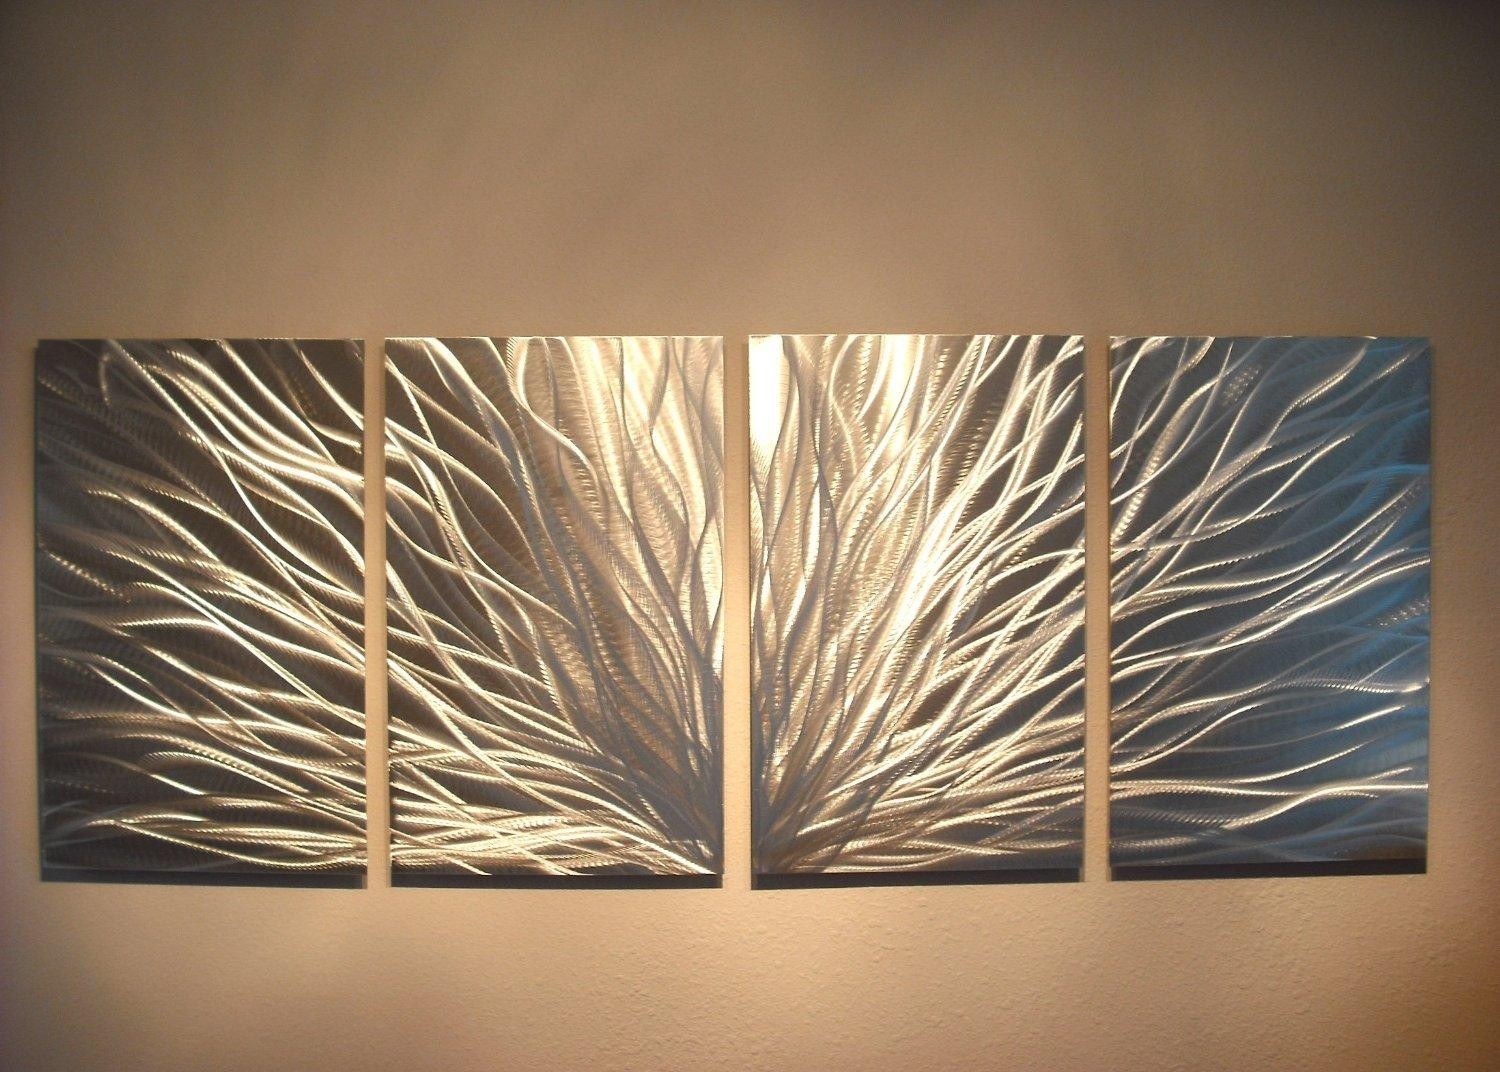 Wall Art Designs: Modern Sculpture Cheap Contemporary Wall Art Inside Cheap Metal Wall Art (Image 16 of 20)